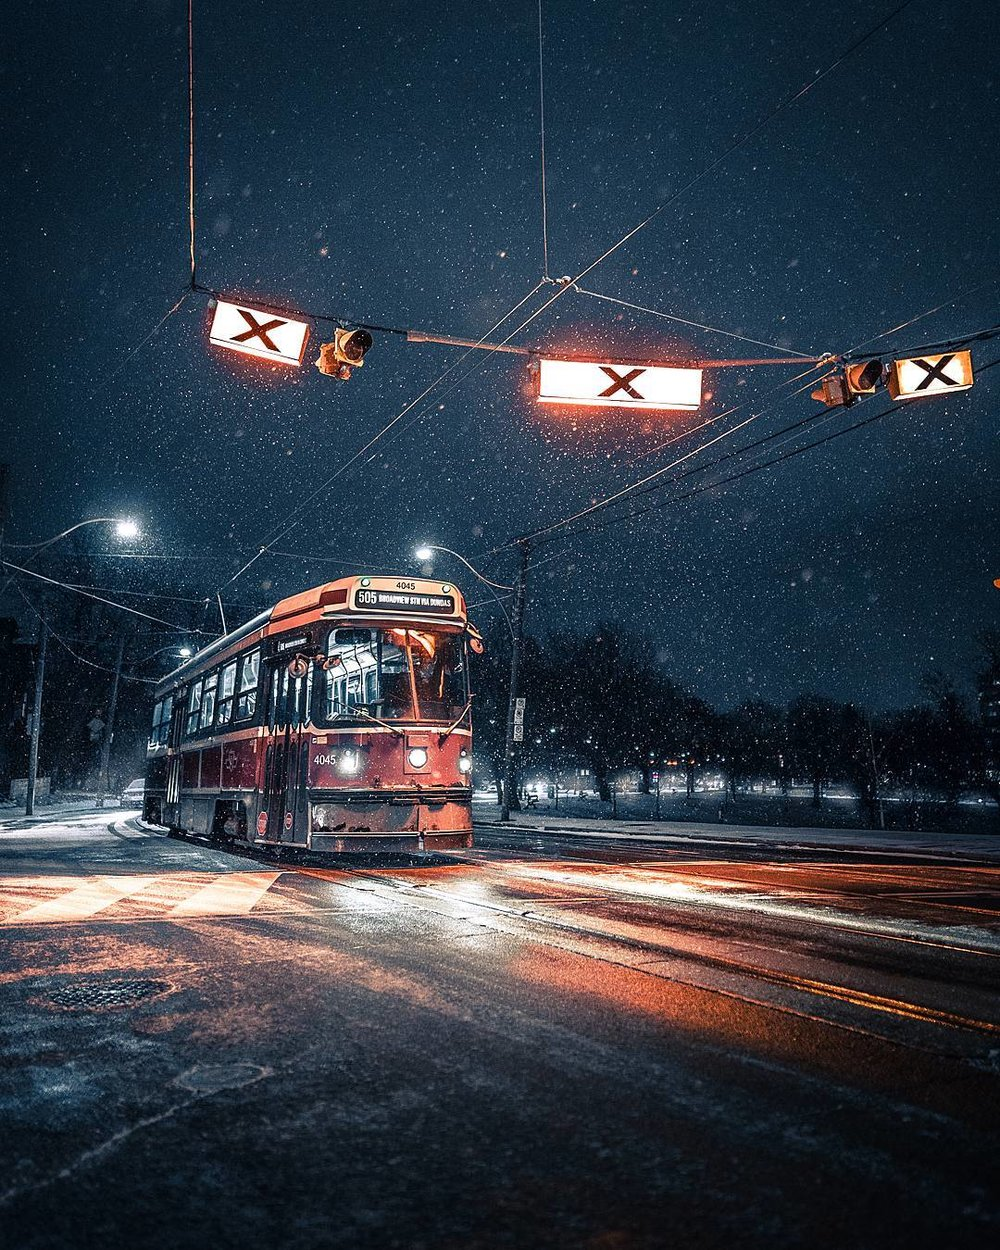 Broadview Express by @maxwhitehead6